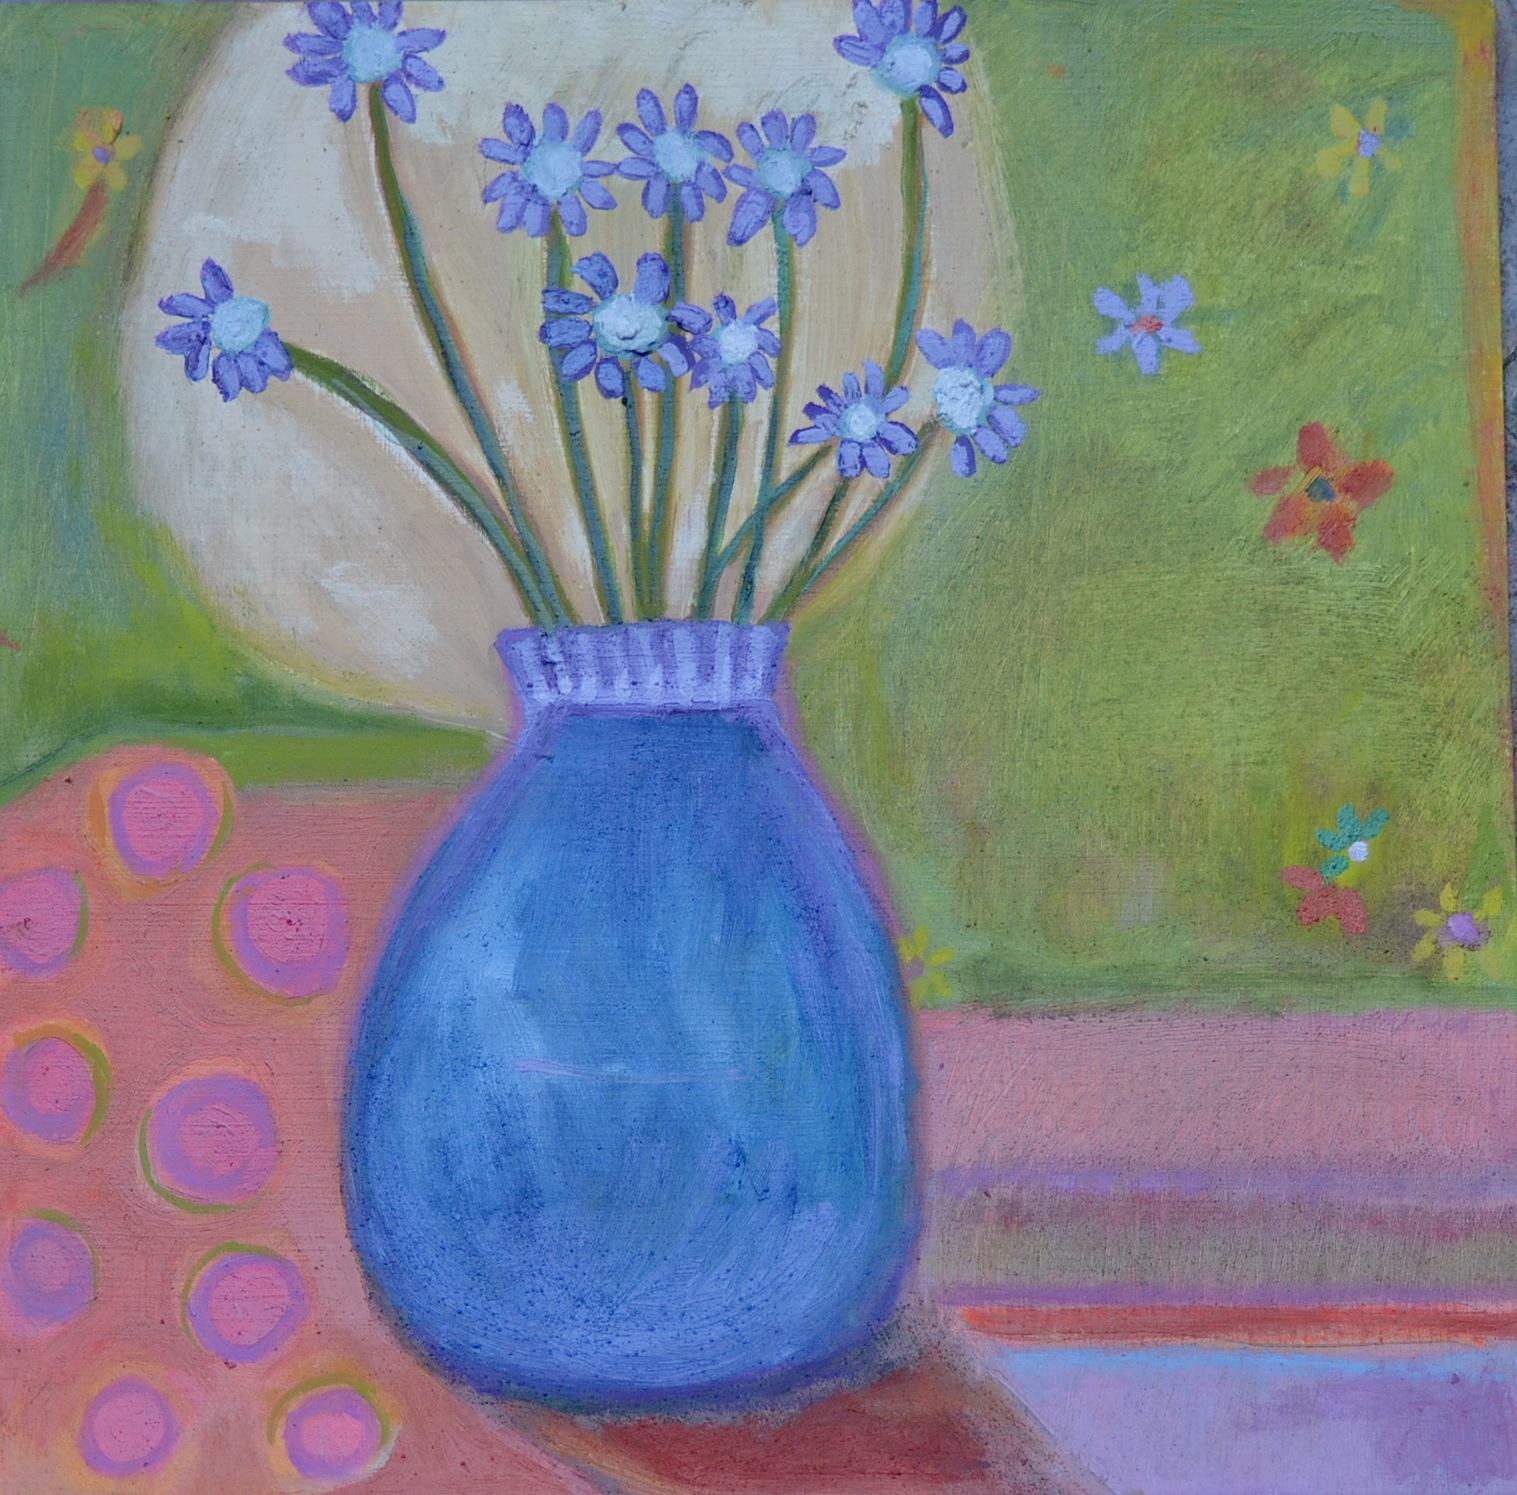 Blue vase with blue flowers